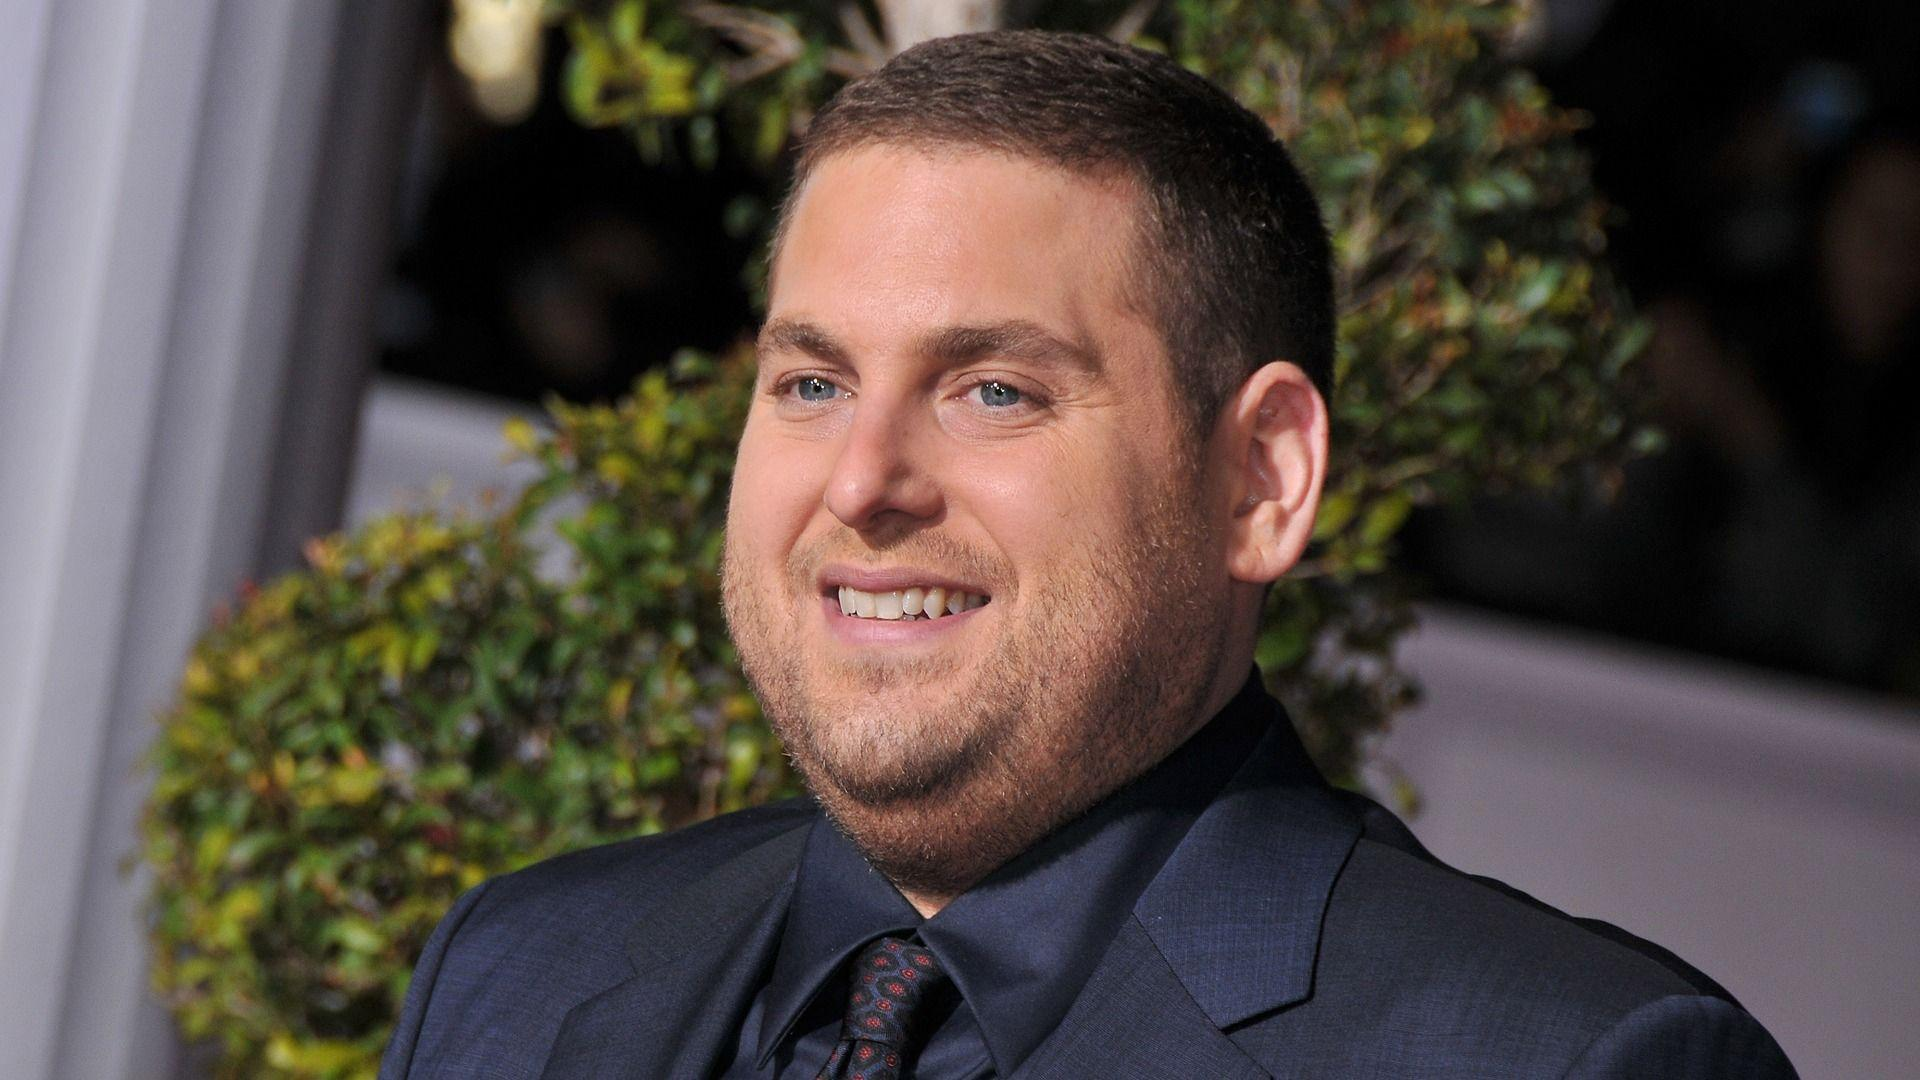 Download Wallpaper 1920x1080 Jonah hill, Actor, Smile Full HD ...